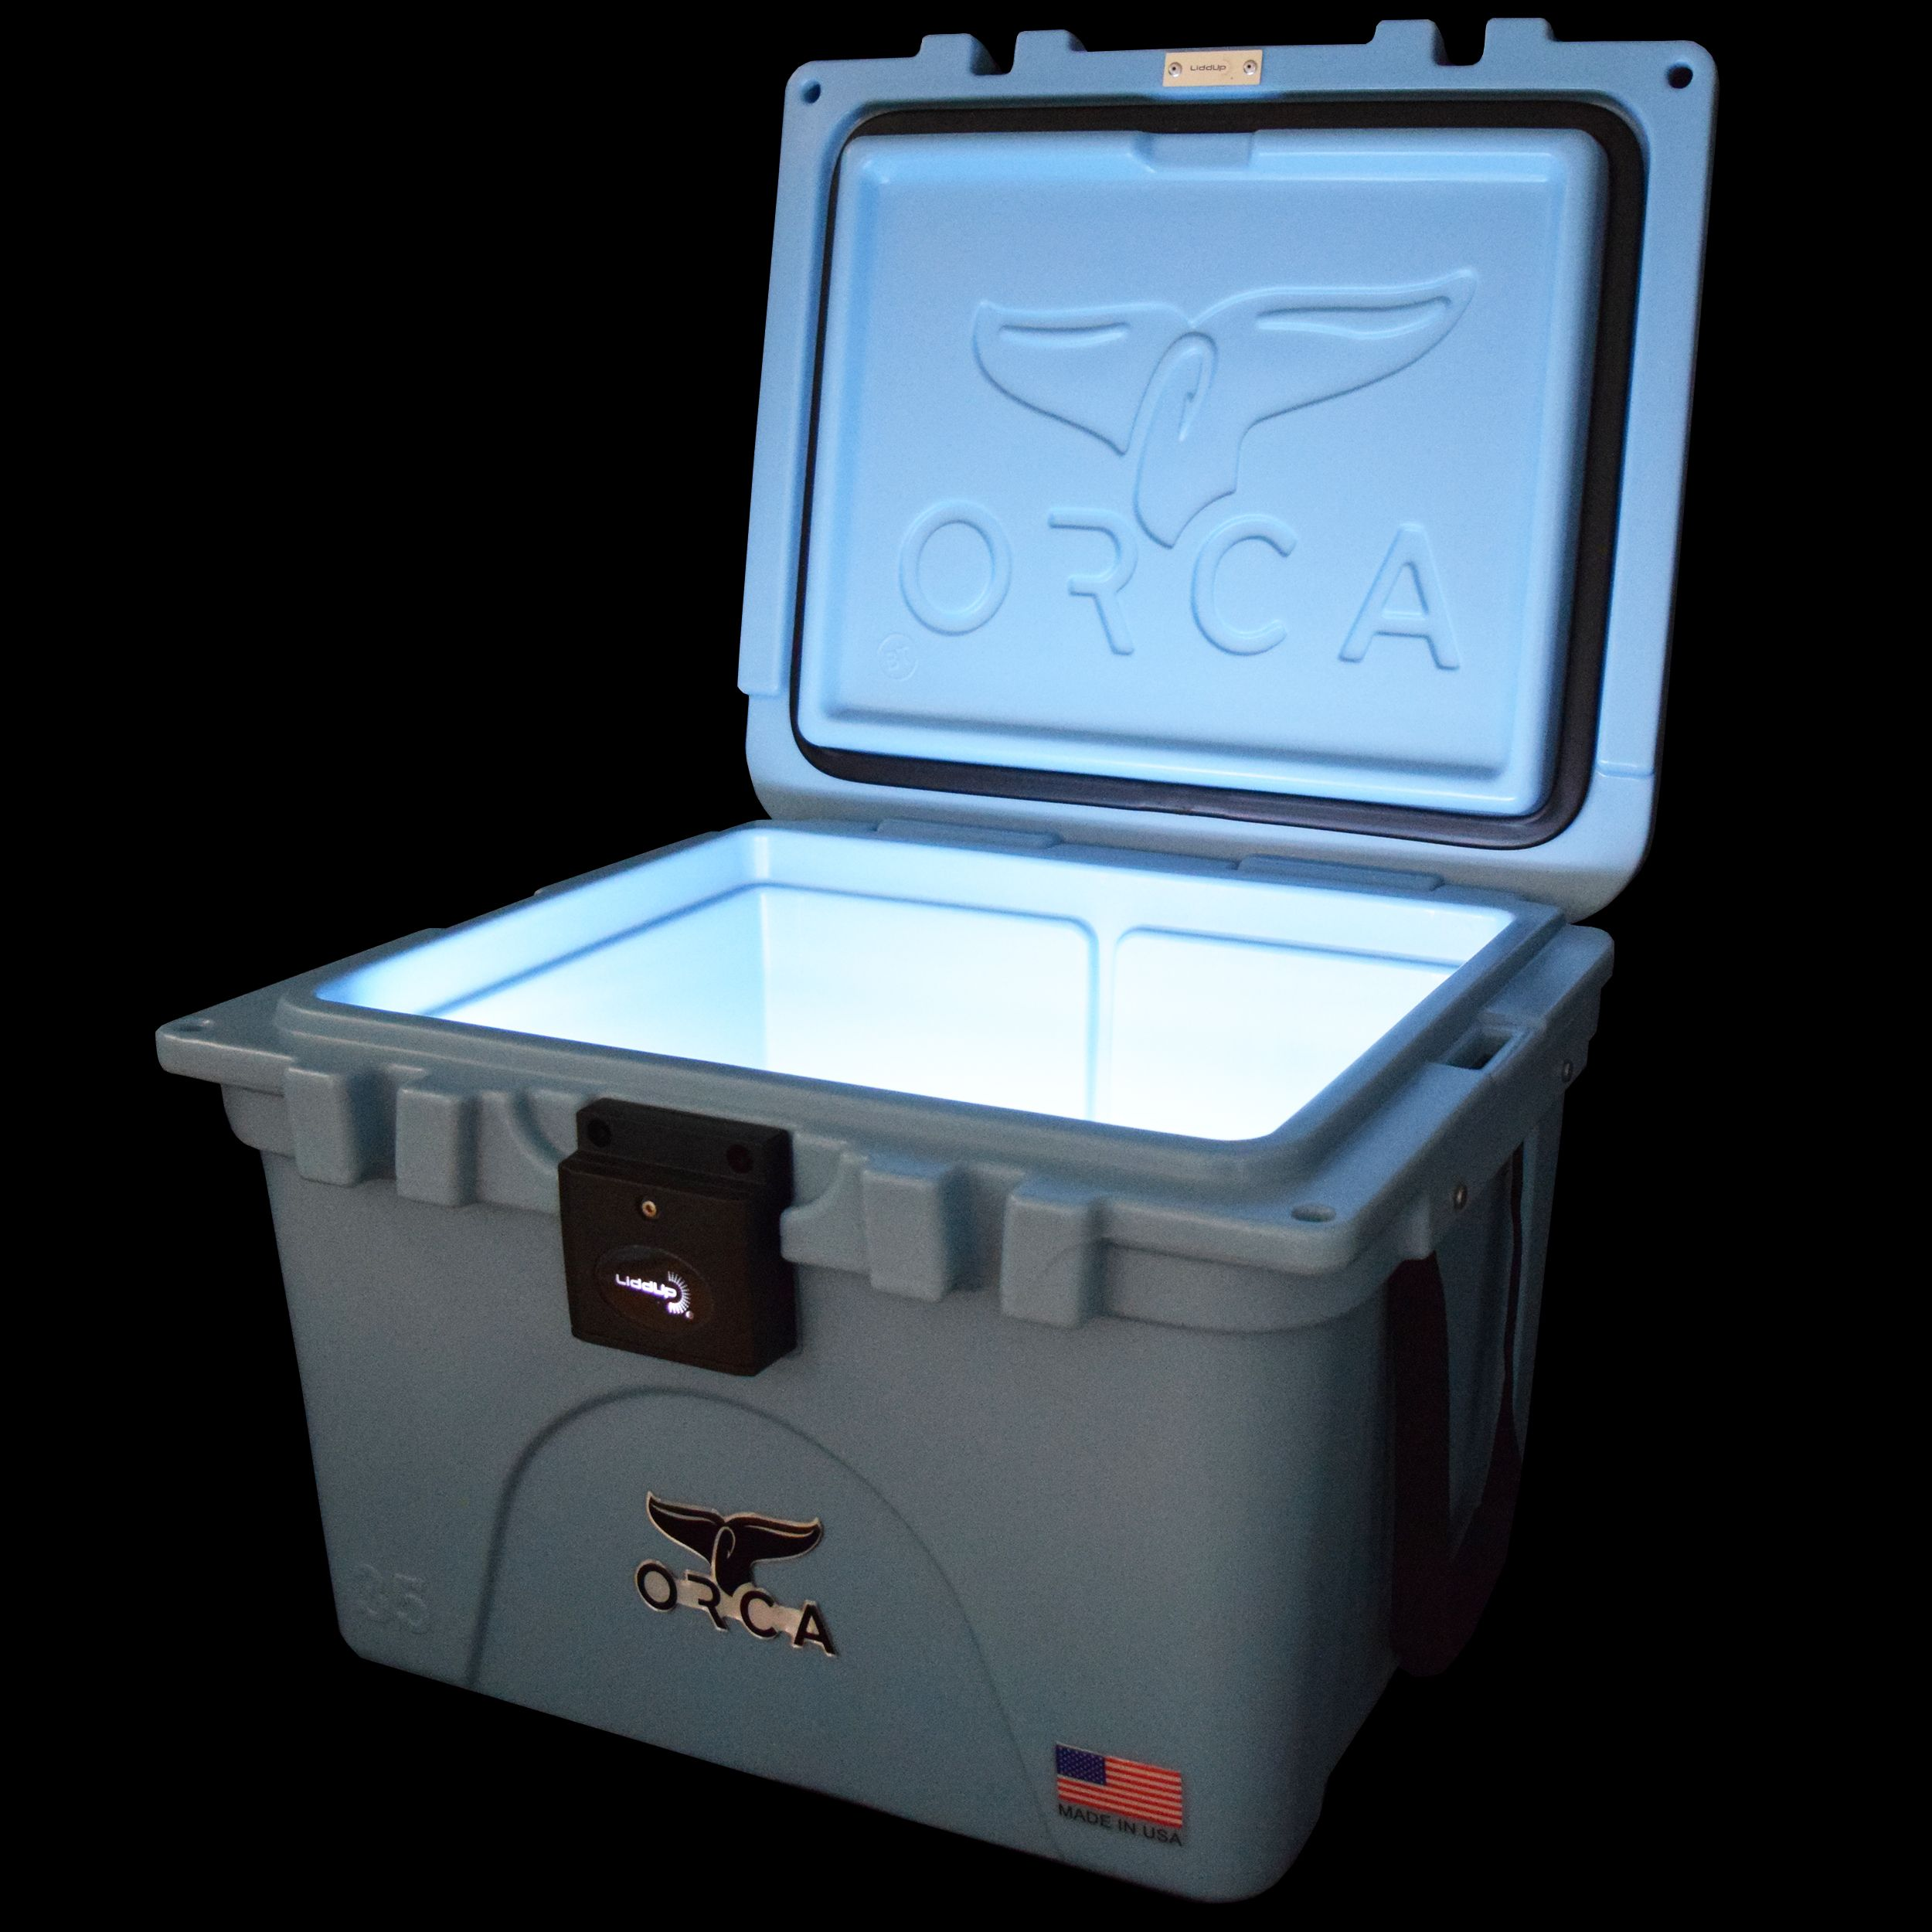 Introducing The Orca Liddup From Orca Coolers This 35 Quart Cooler Features Maximum Ice Cold Retention And Our Patented Led Orca Cooler Orca Interior Lighting